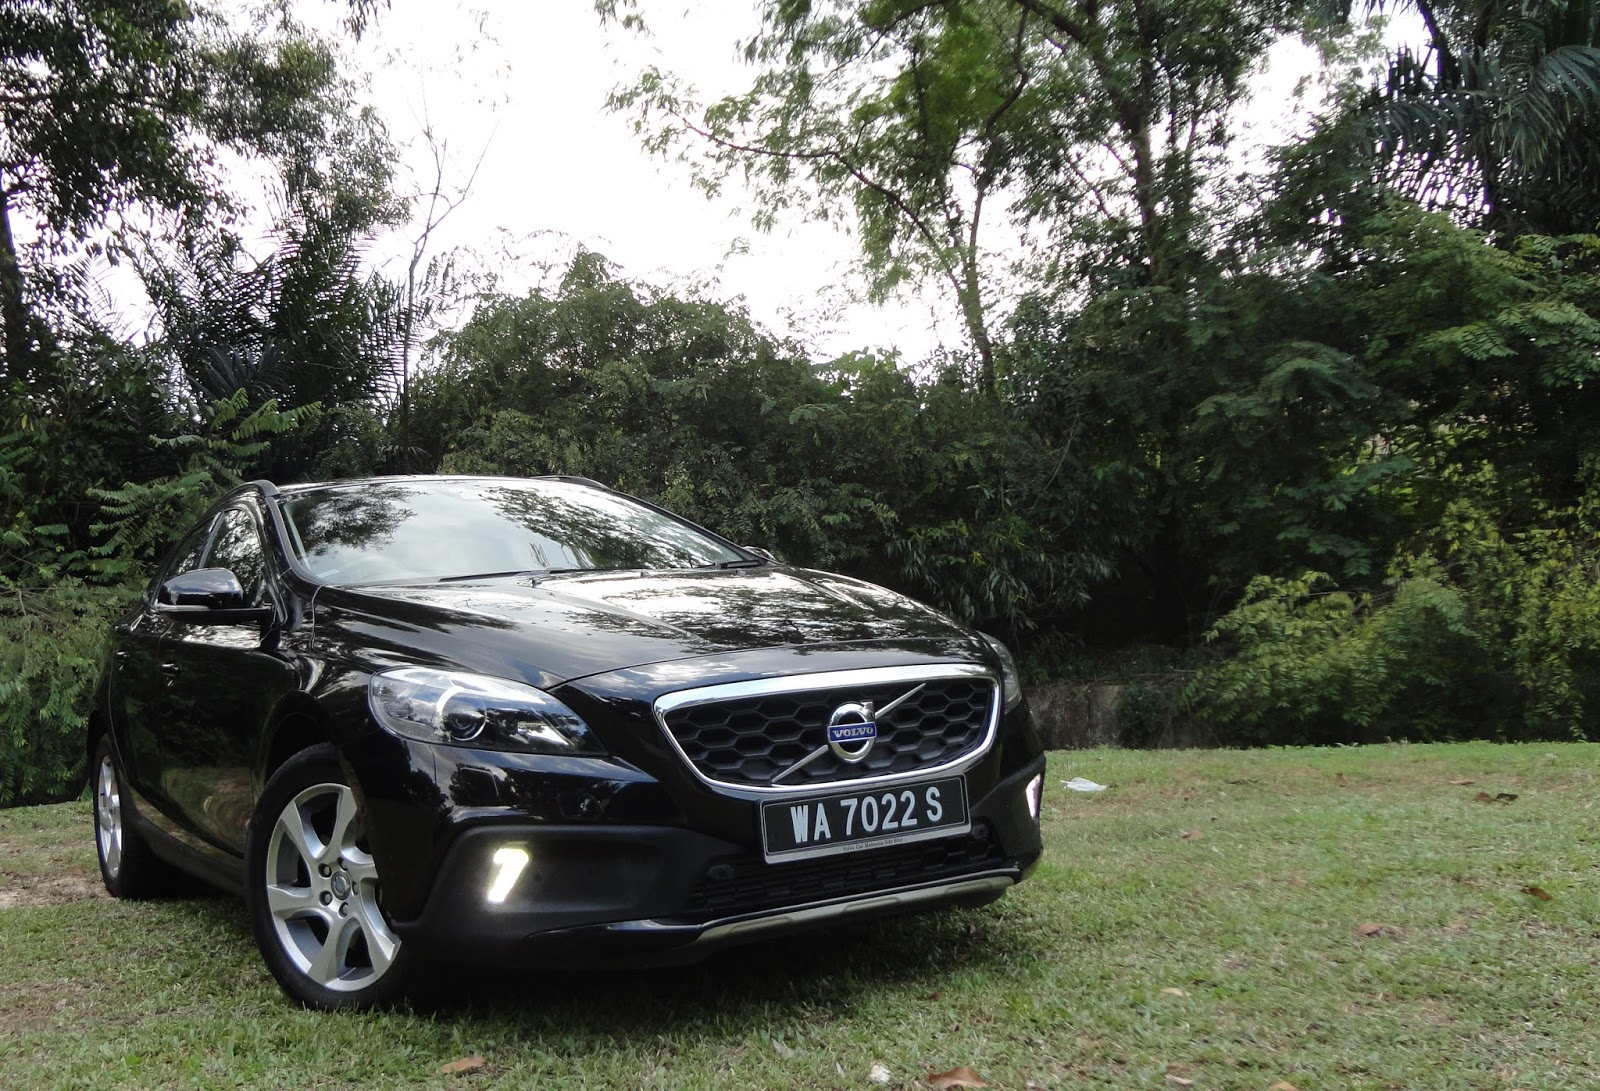 Test Drive Volvo V40 T5 Cross Country 2 0 Probably The Most Refined Premium Hatchback In Market